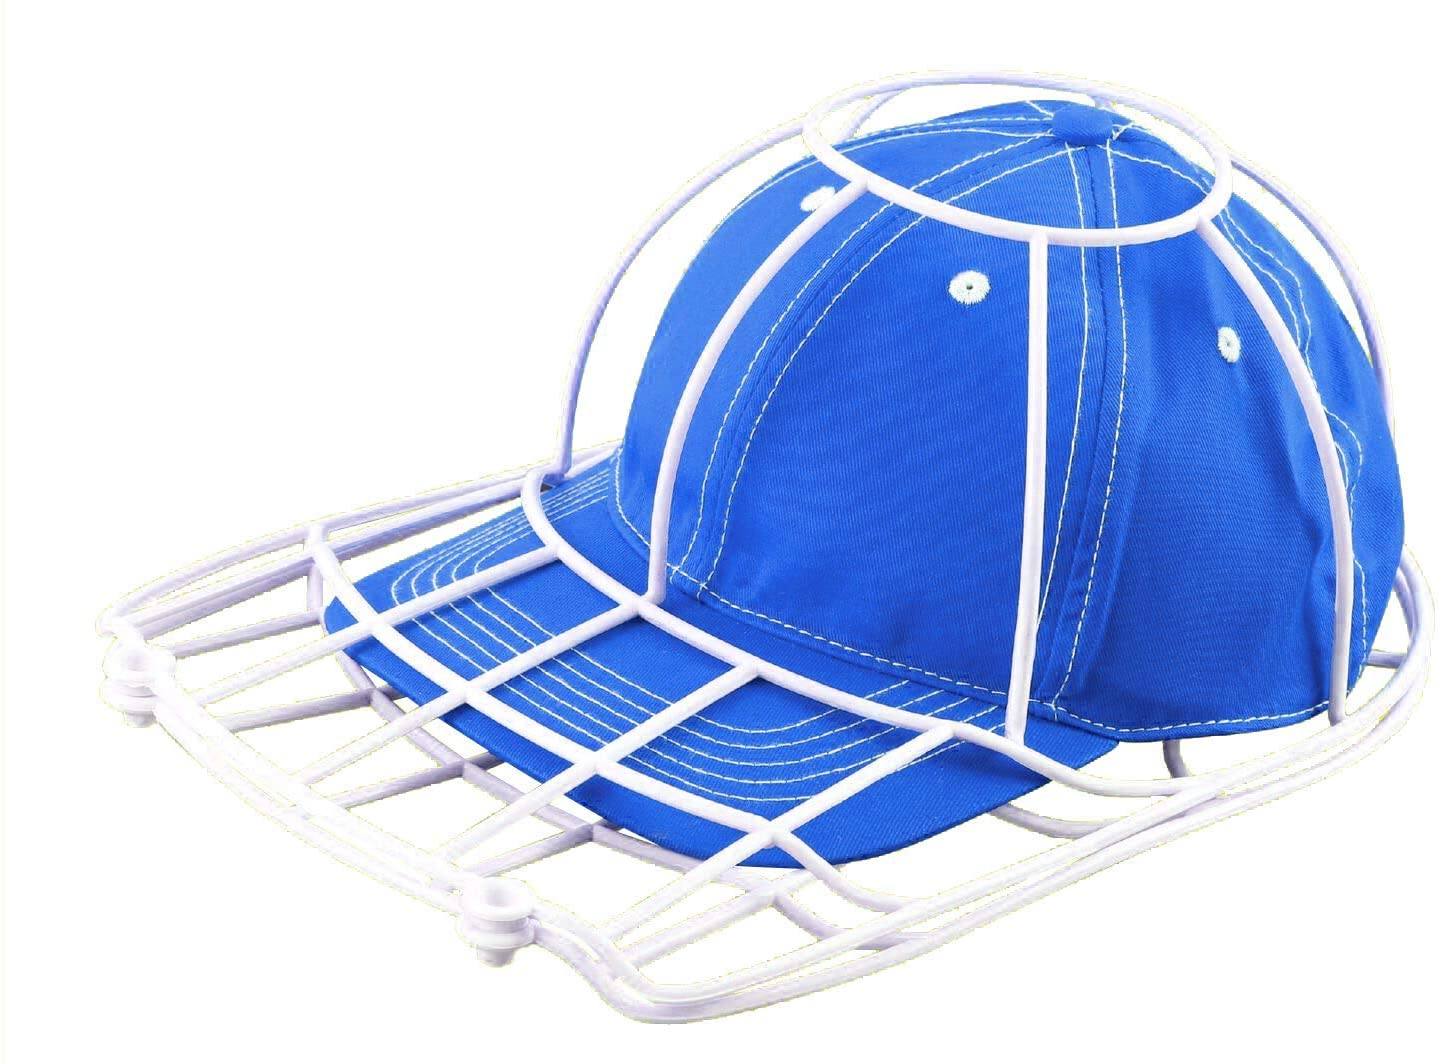 TSF TOYS Ballcap, Cap Washer, Baseball Hat Cleaner, Shaper Protector Cage, Ball Cap for Washing Machine Dishwasher Closet Hanger Organizer and Luggage, The Original Hat Cleaning Made in USA (1 Pack)